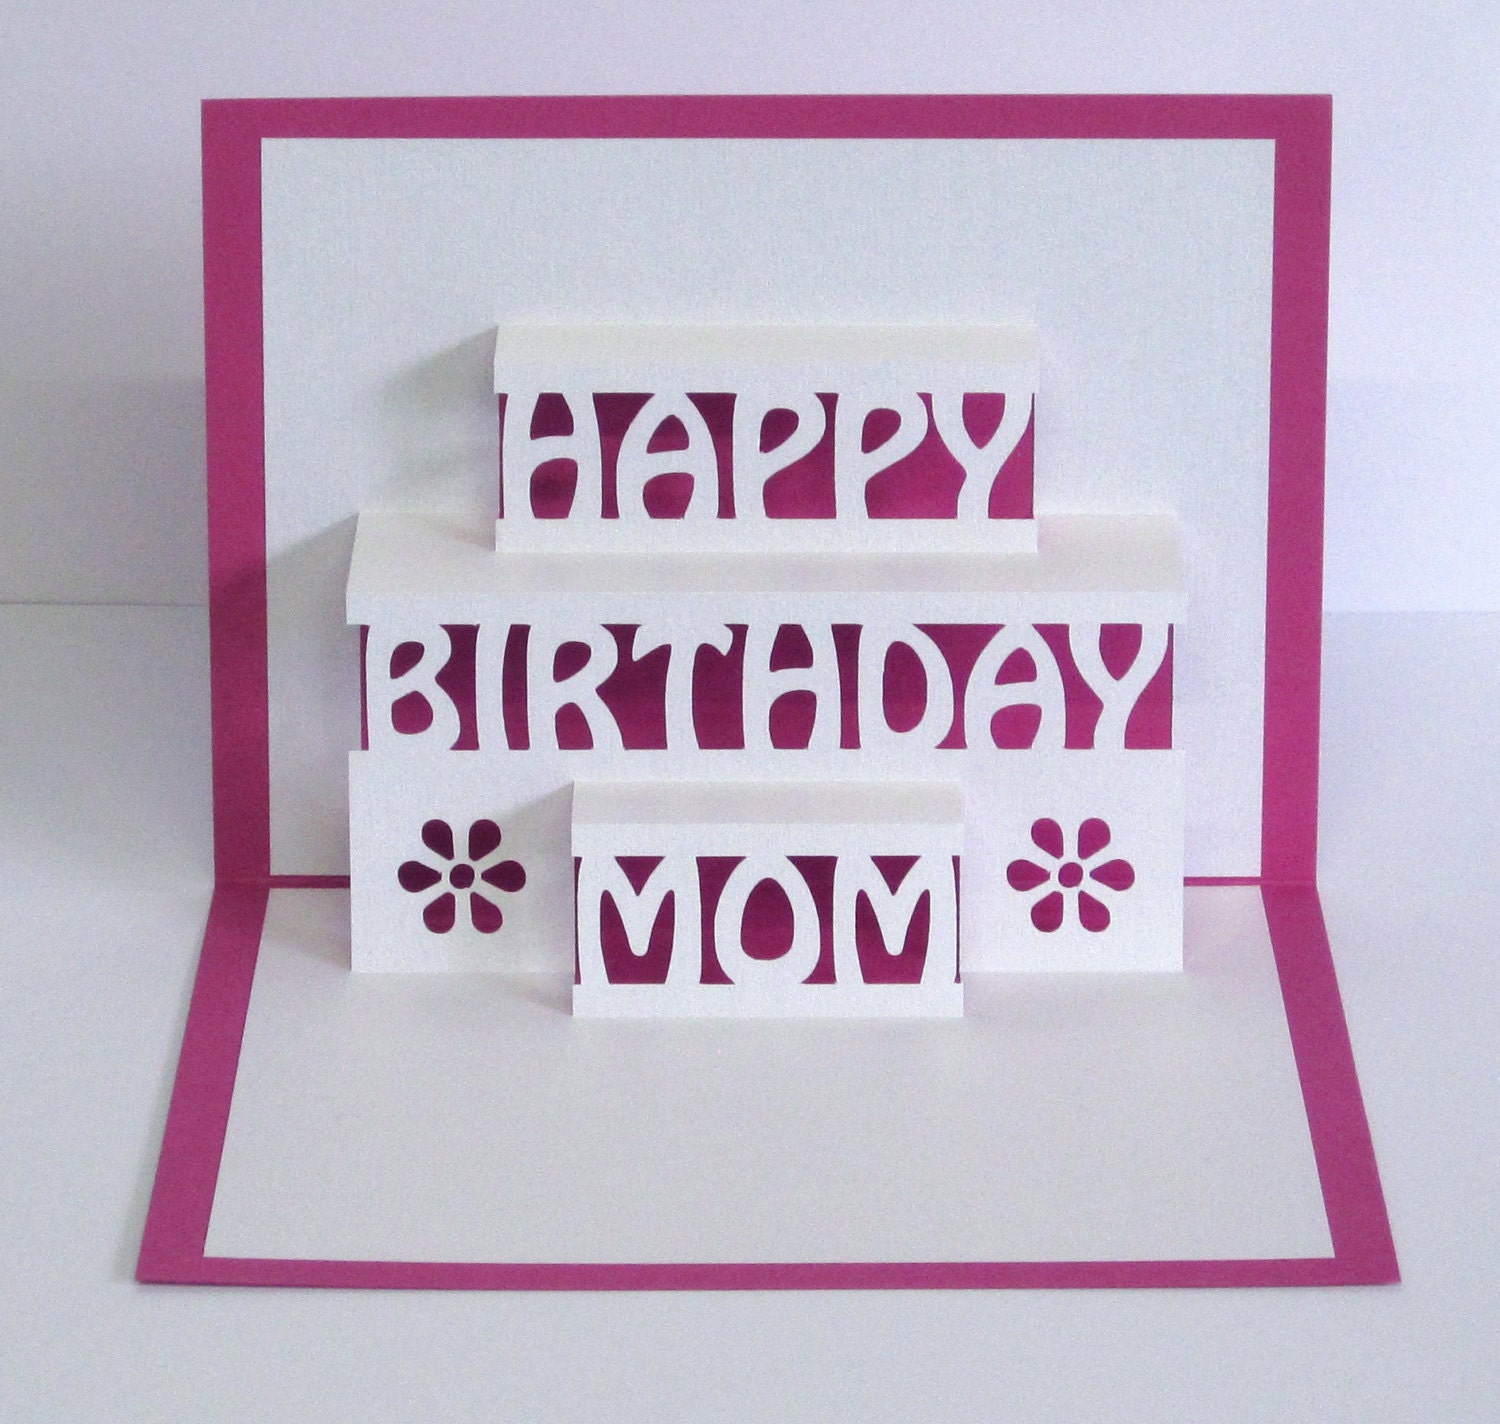 Mama geburtstagskarte 3d pop up happy birthday mama card - Geburtstagskarte pop up ...